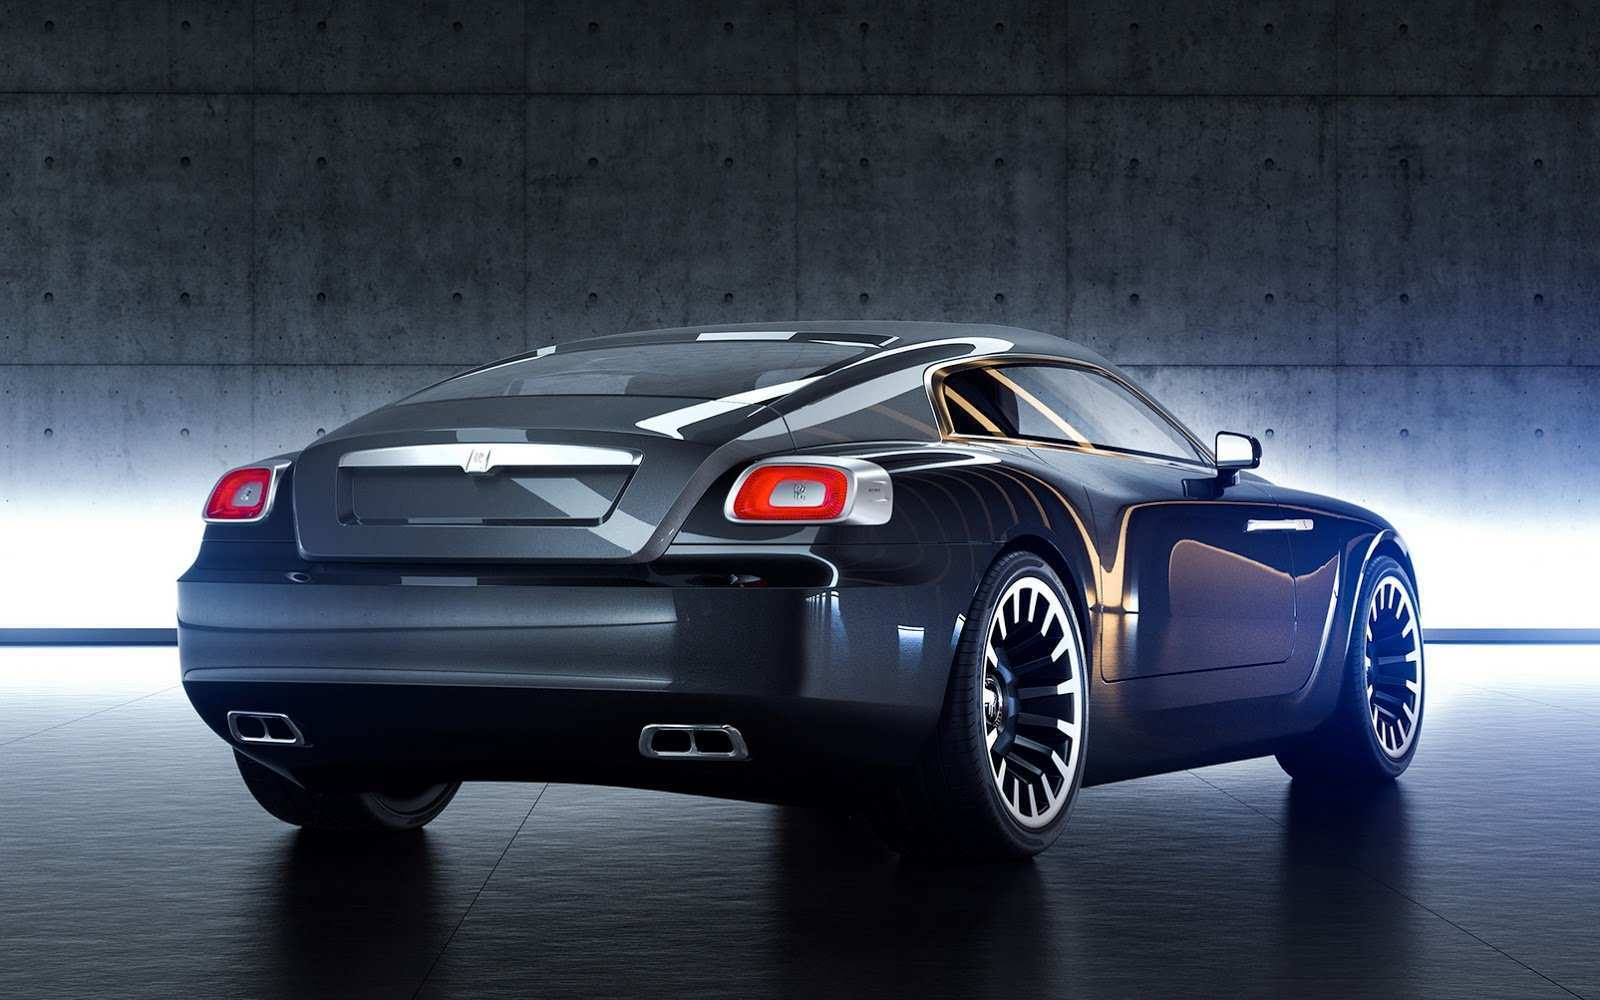 68 Best Review 2020 Rolls Royce Wraith Exterior and Interior with 2020 Rolls Royce Wraith